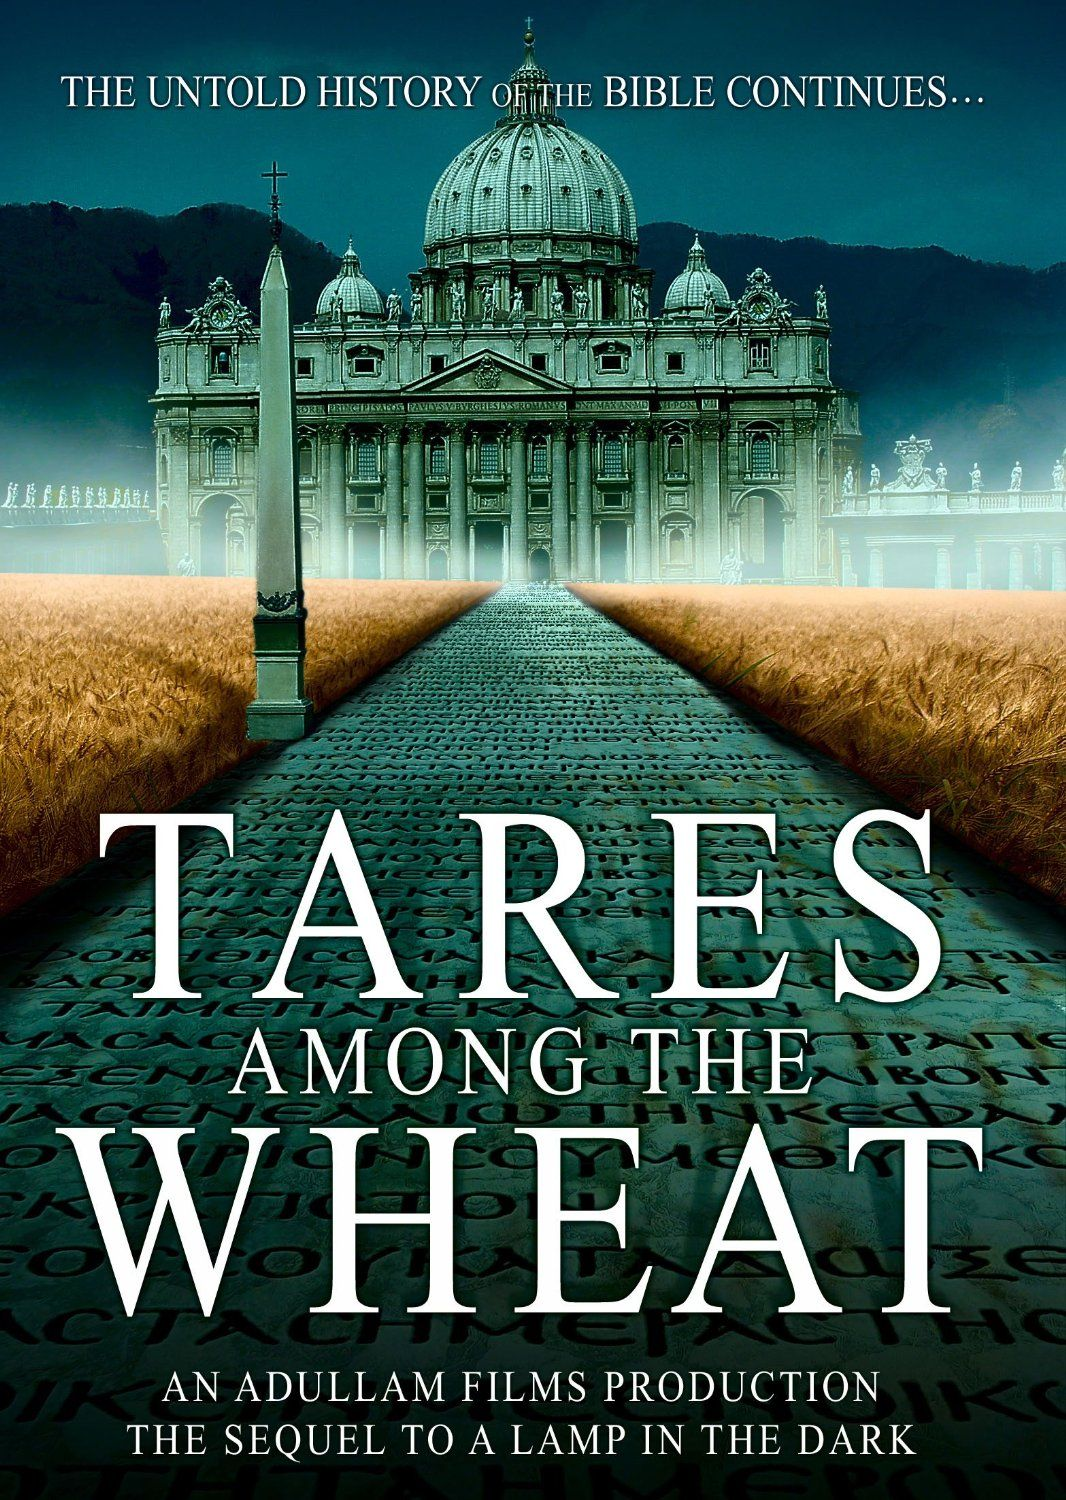 Tares among the wheat sequel to a lamp in the dark 2013 an tares among the wheat christian movie christian film dvd king james bible buycottarizona Choice Image